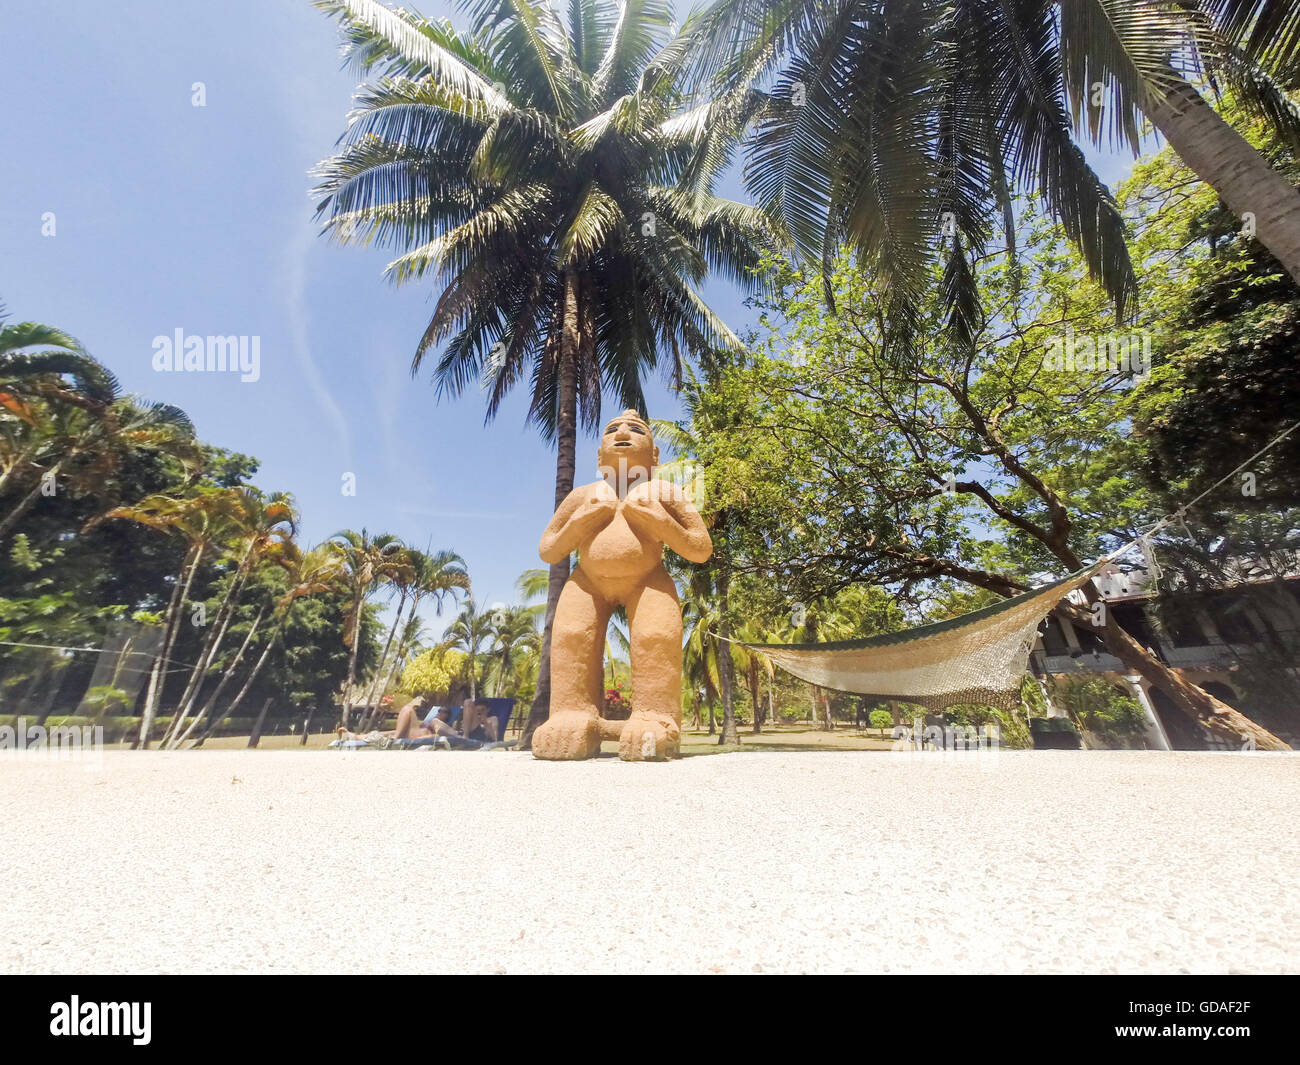 Costa Rica, Guanacaste, clay figure at the pool Stock Photo